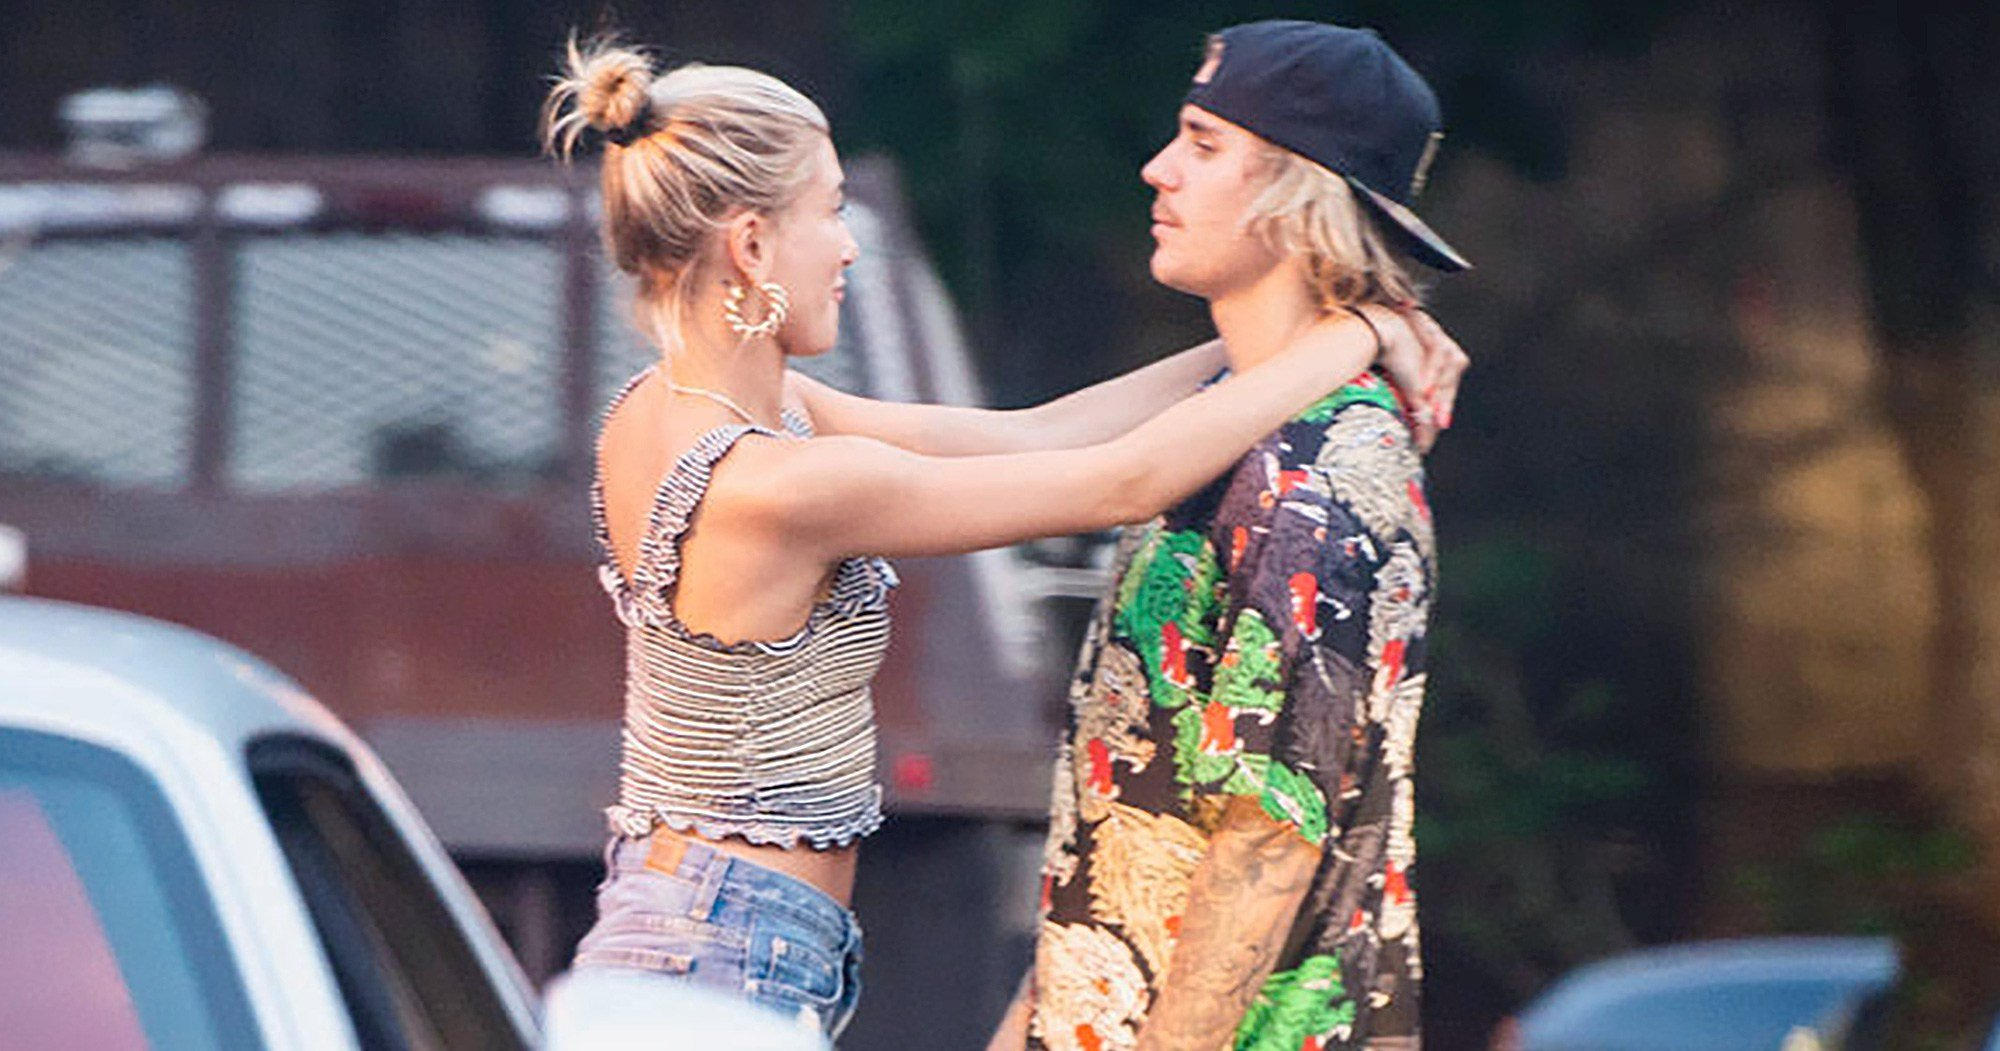 Justin Bieber and Hailey Baldwin Just Officially Confirmed Their Engagement on Instagram